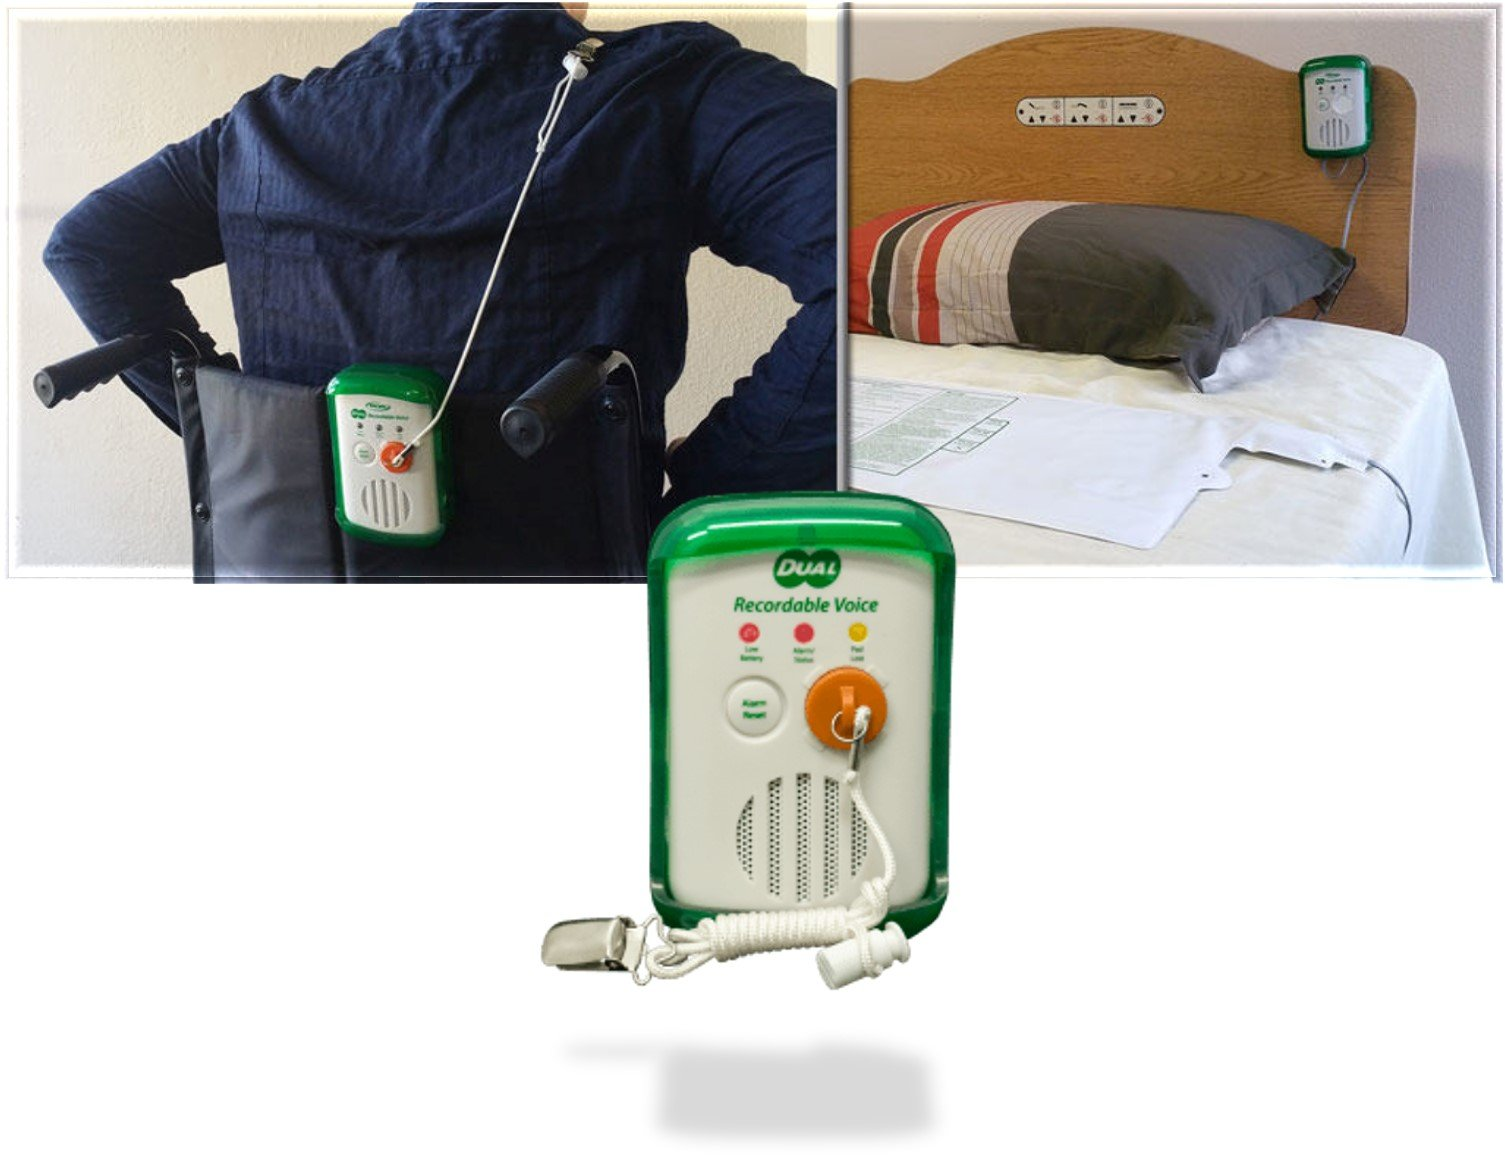 Smart Caregiver Bed & Chair Exit Alarm Monitor For Fall & Wandering Prevention - Dual Recordable Voice (Bed Pad - 20''x30'')